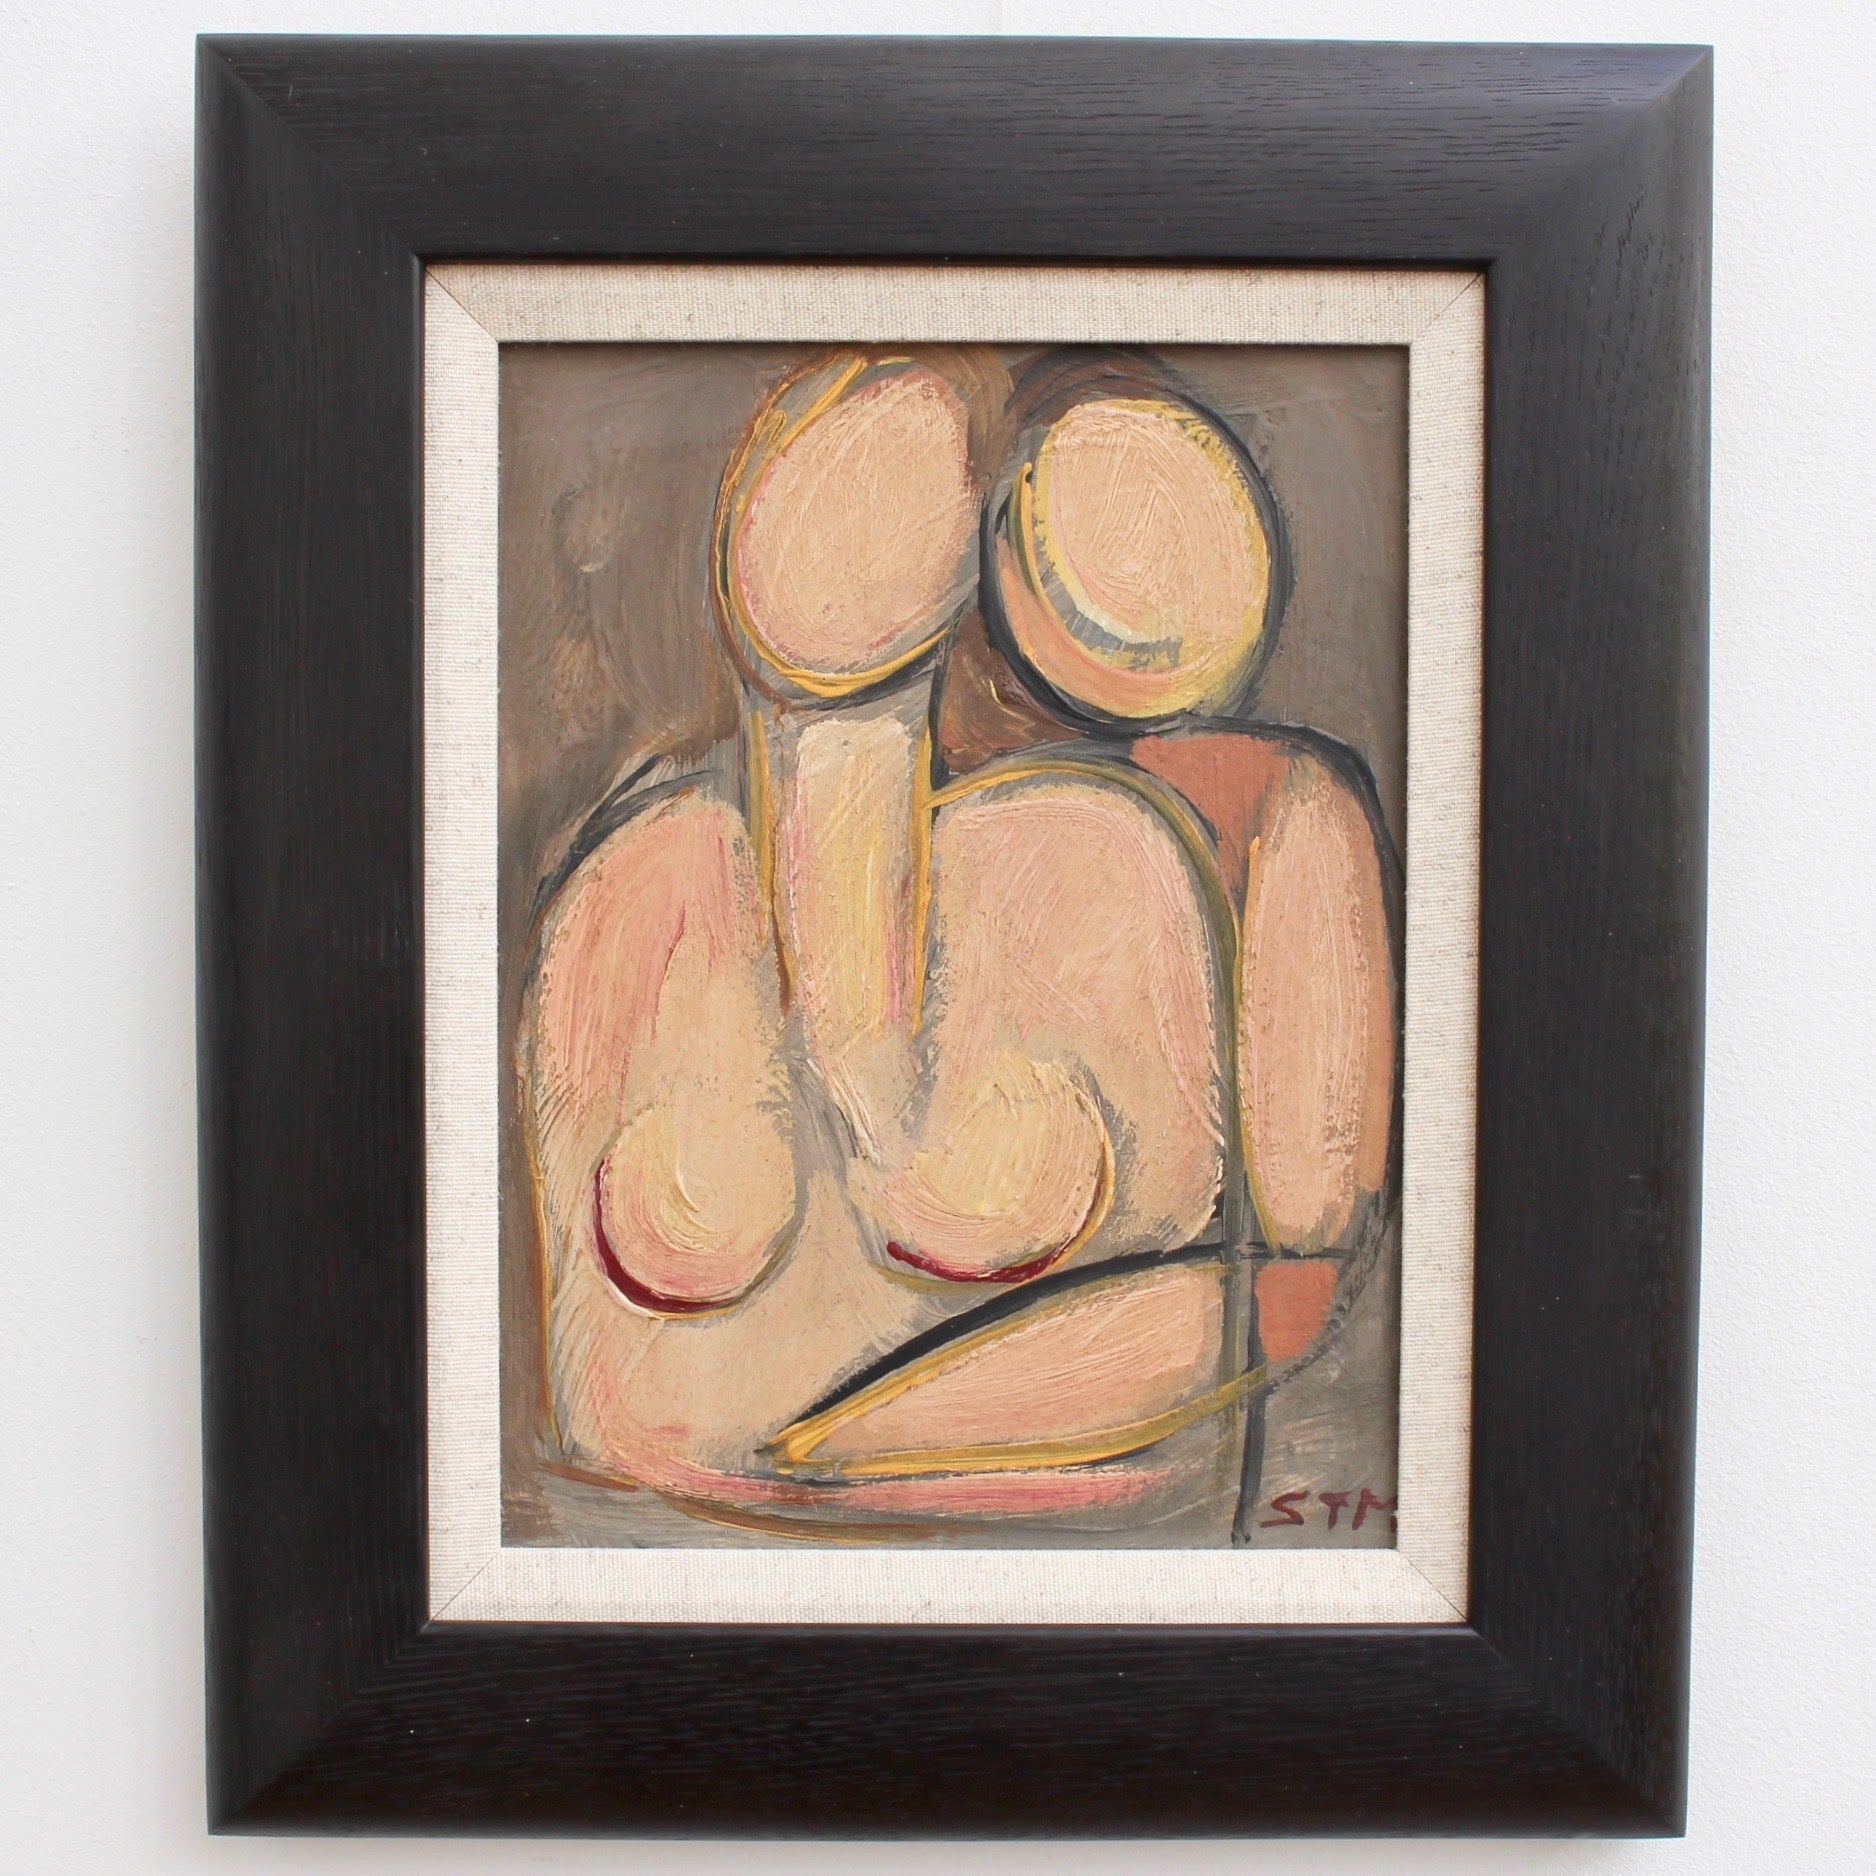 'The Firm Embrace' by STM (circa 1940s - 1960s)